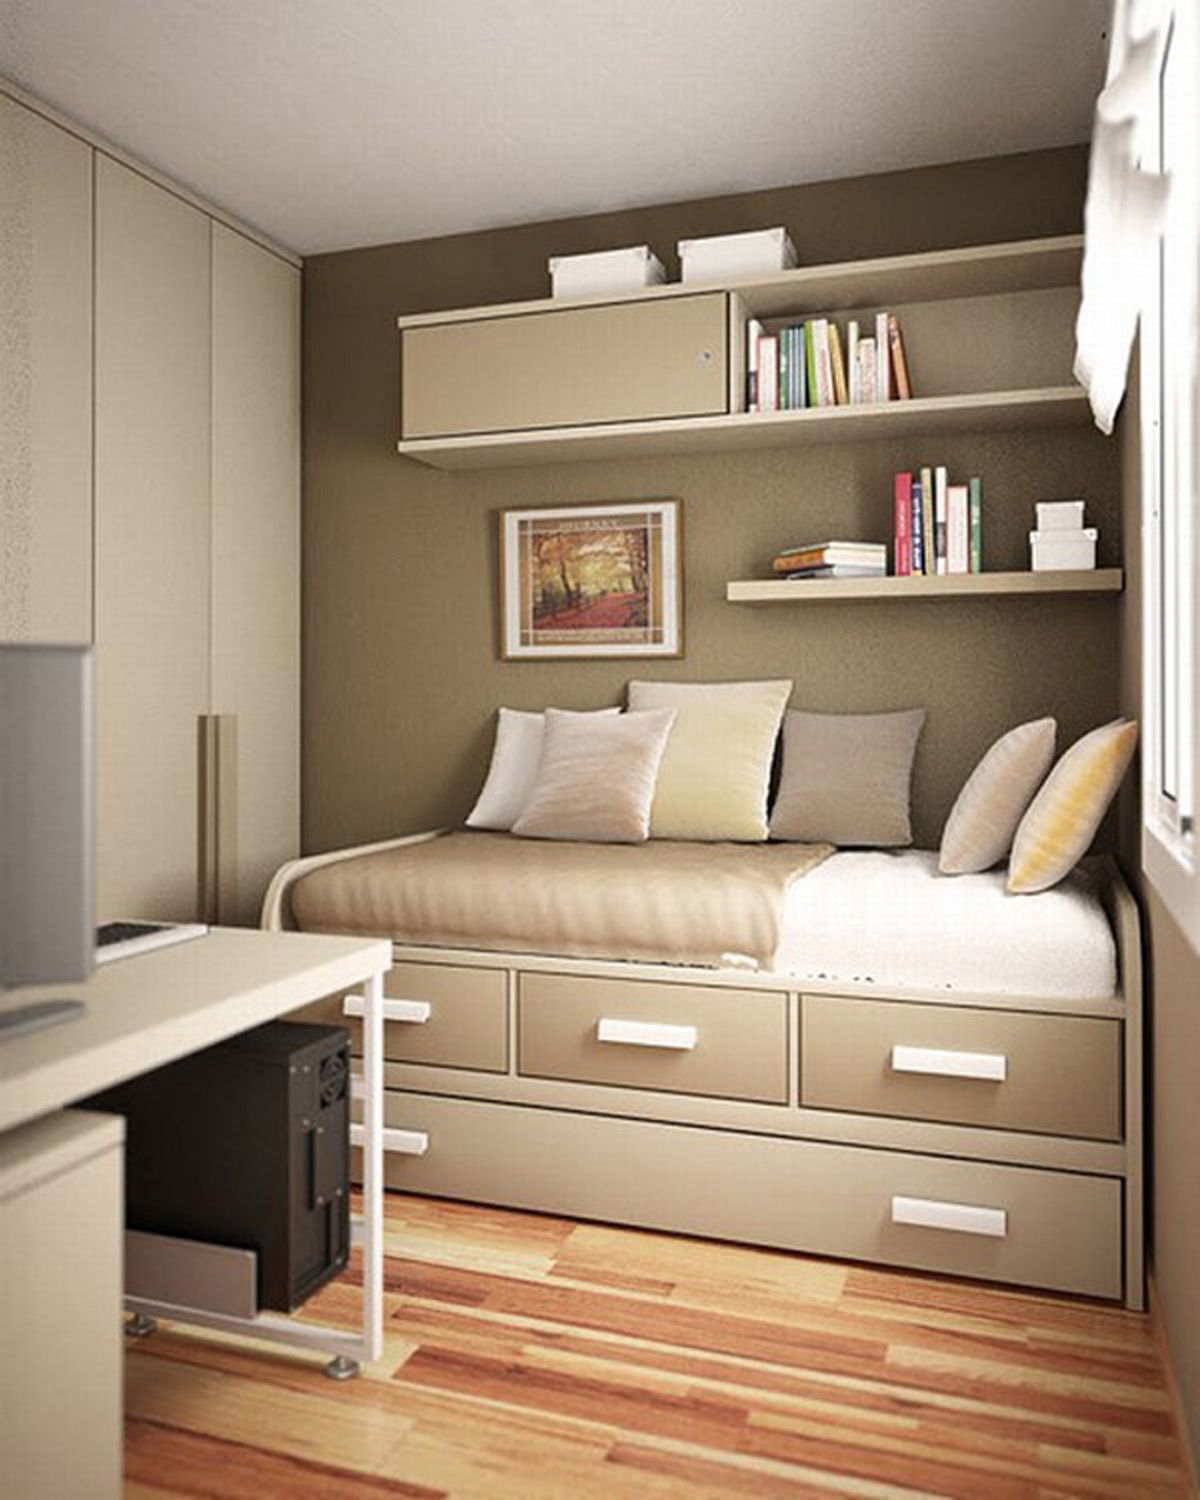 Contemporary Small Bedroom Ideas. Contemporary Small Bedroom Ideas   Bedrooms  Contemporary and